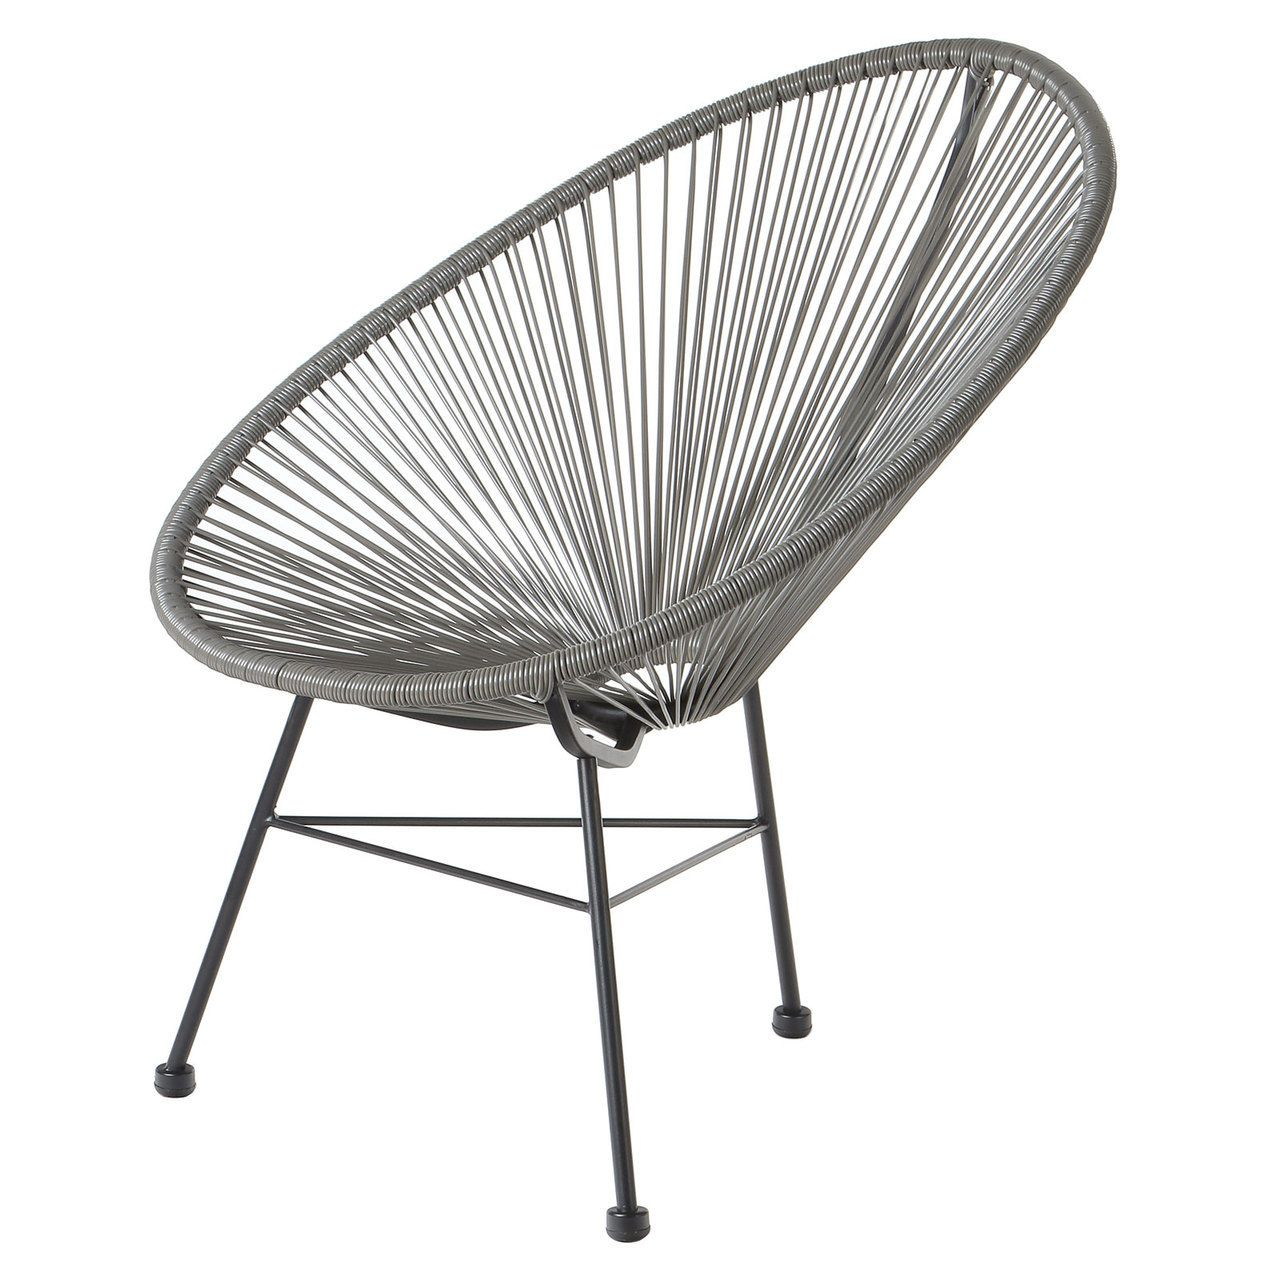 Acapulco Chair For Sale Acapulco Lounge Chair Grey Wire Basket Patio Chair